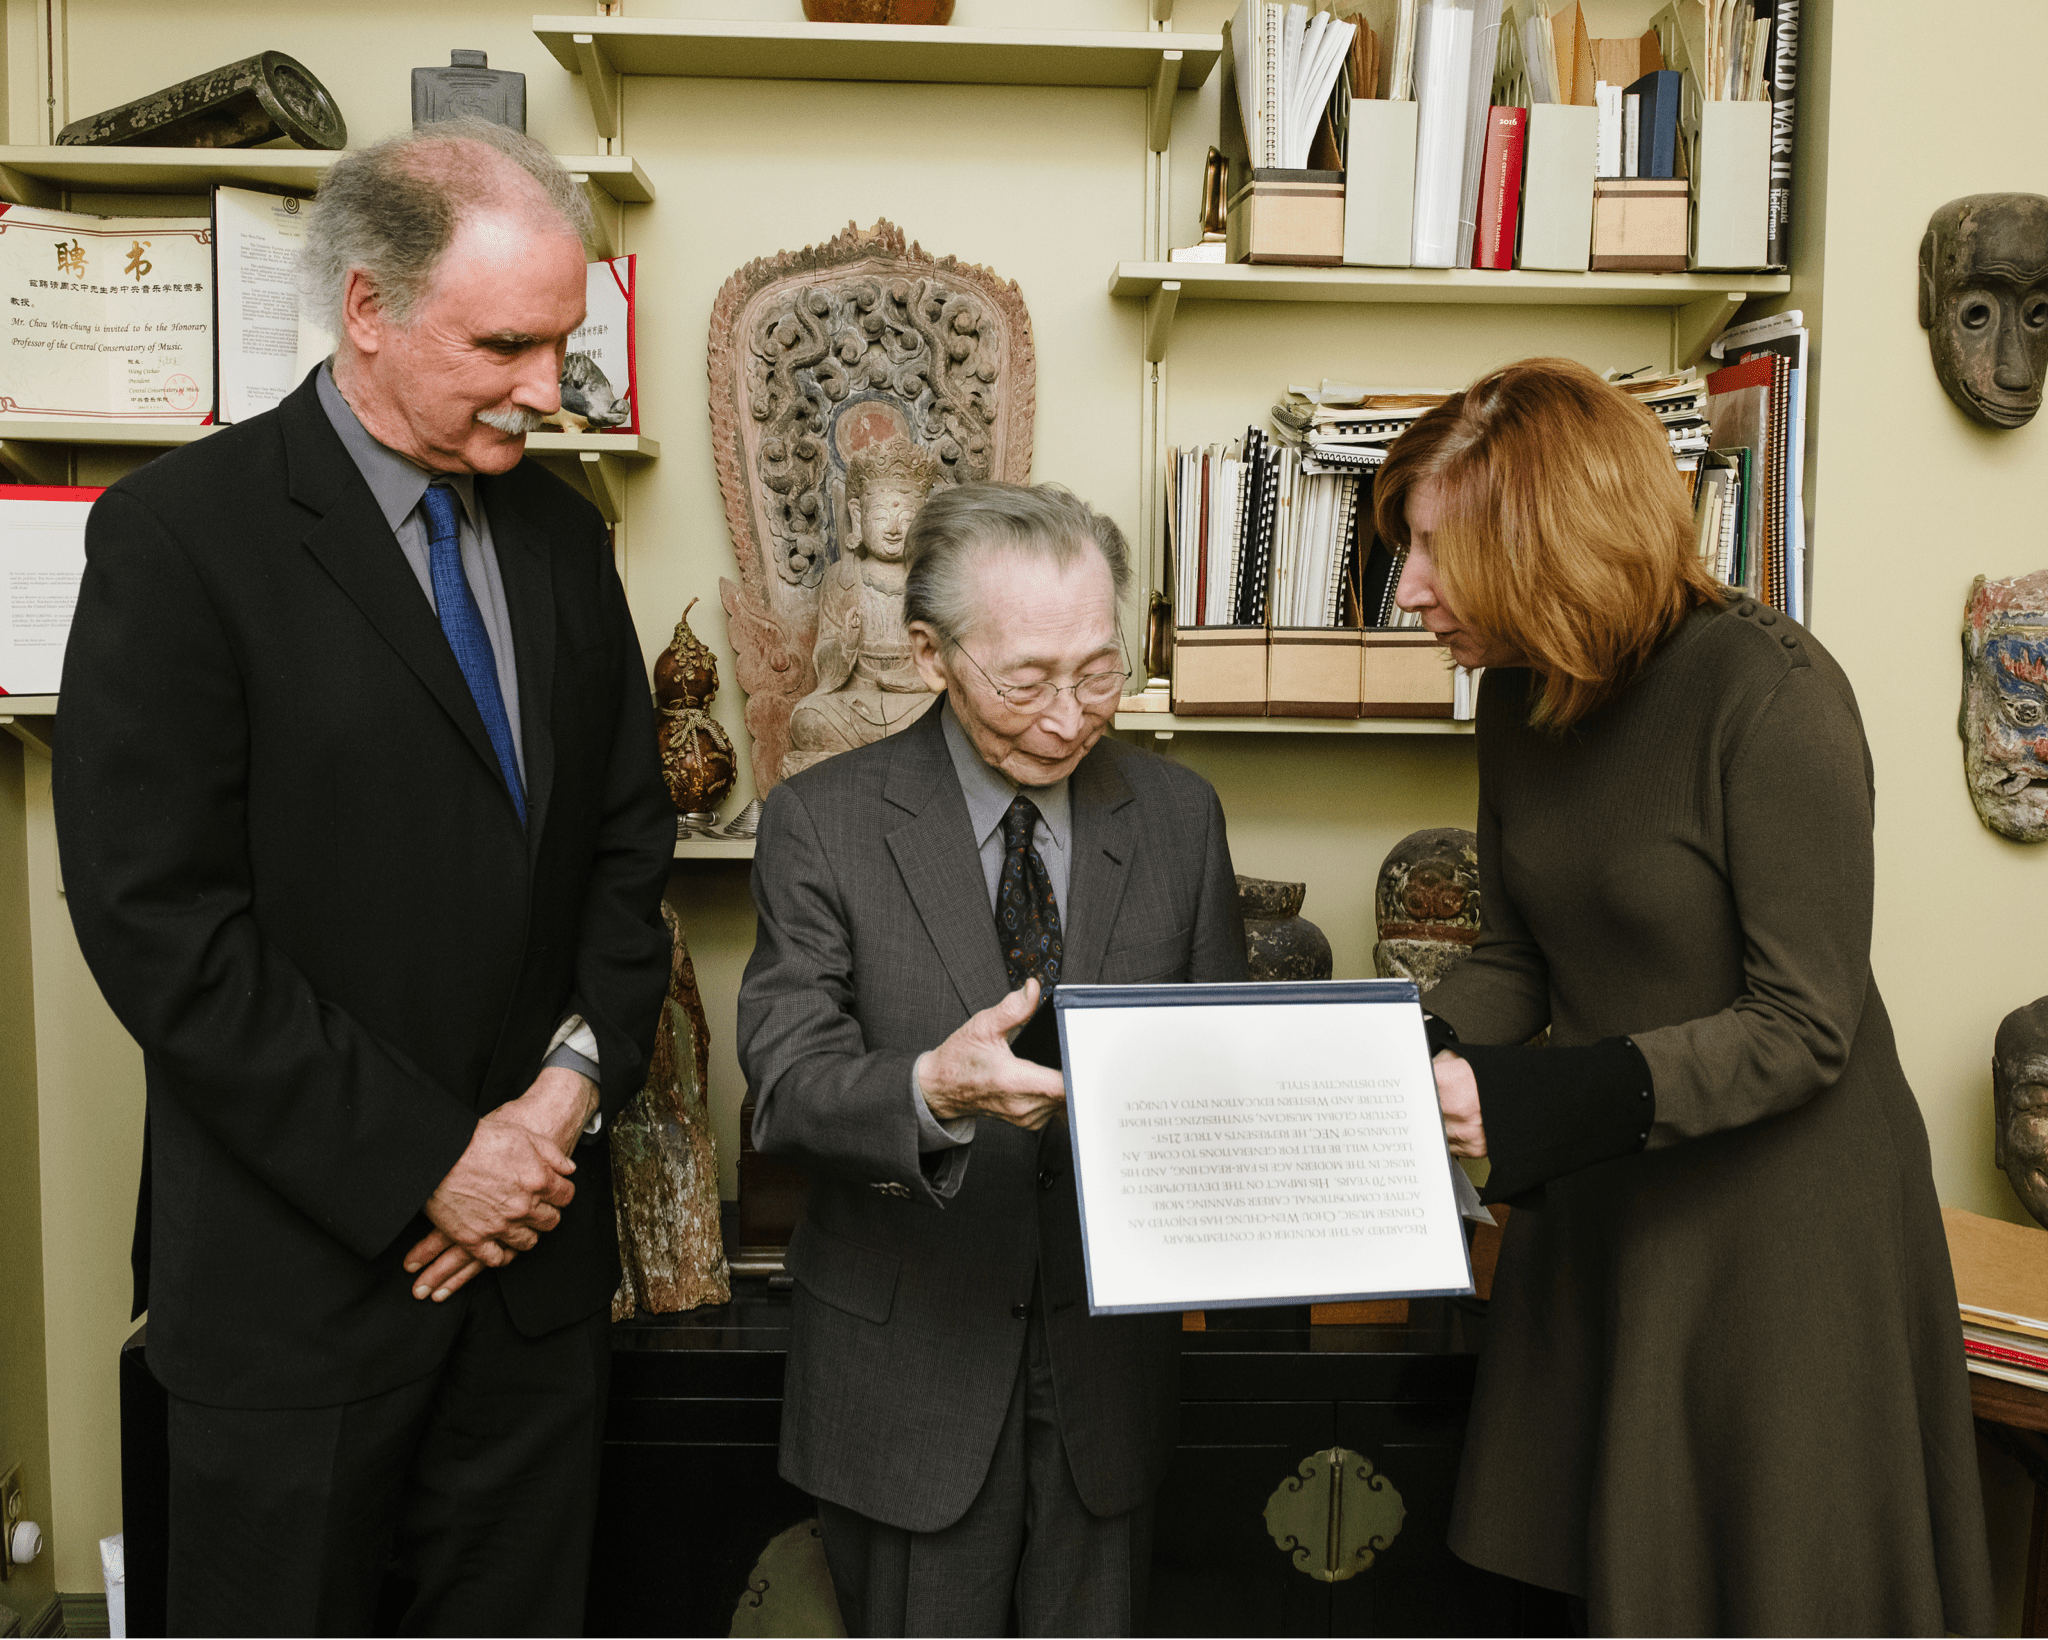 Prof. Donald Palma, Chou Wen-chung and NEC President Kalyn (Photo by Fadi Kheir, on behalf of New England Conservatory).